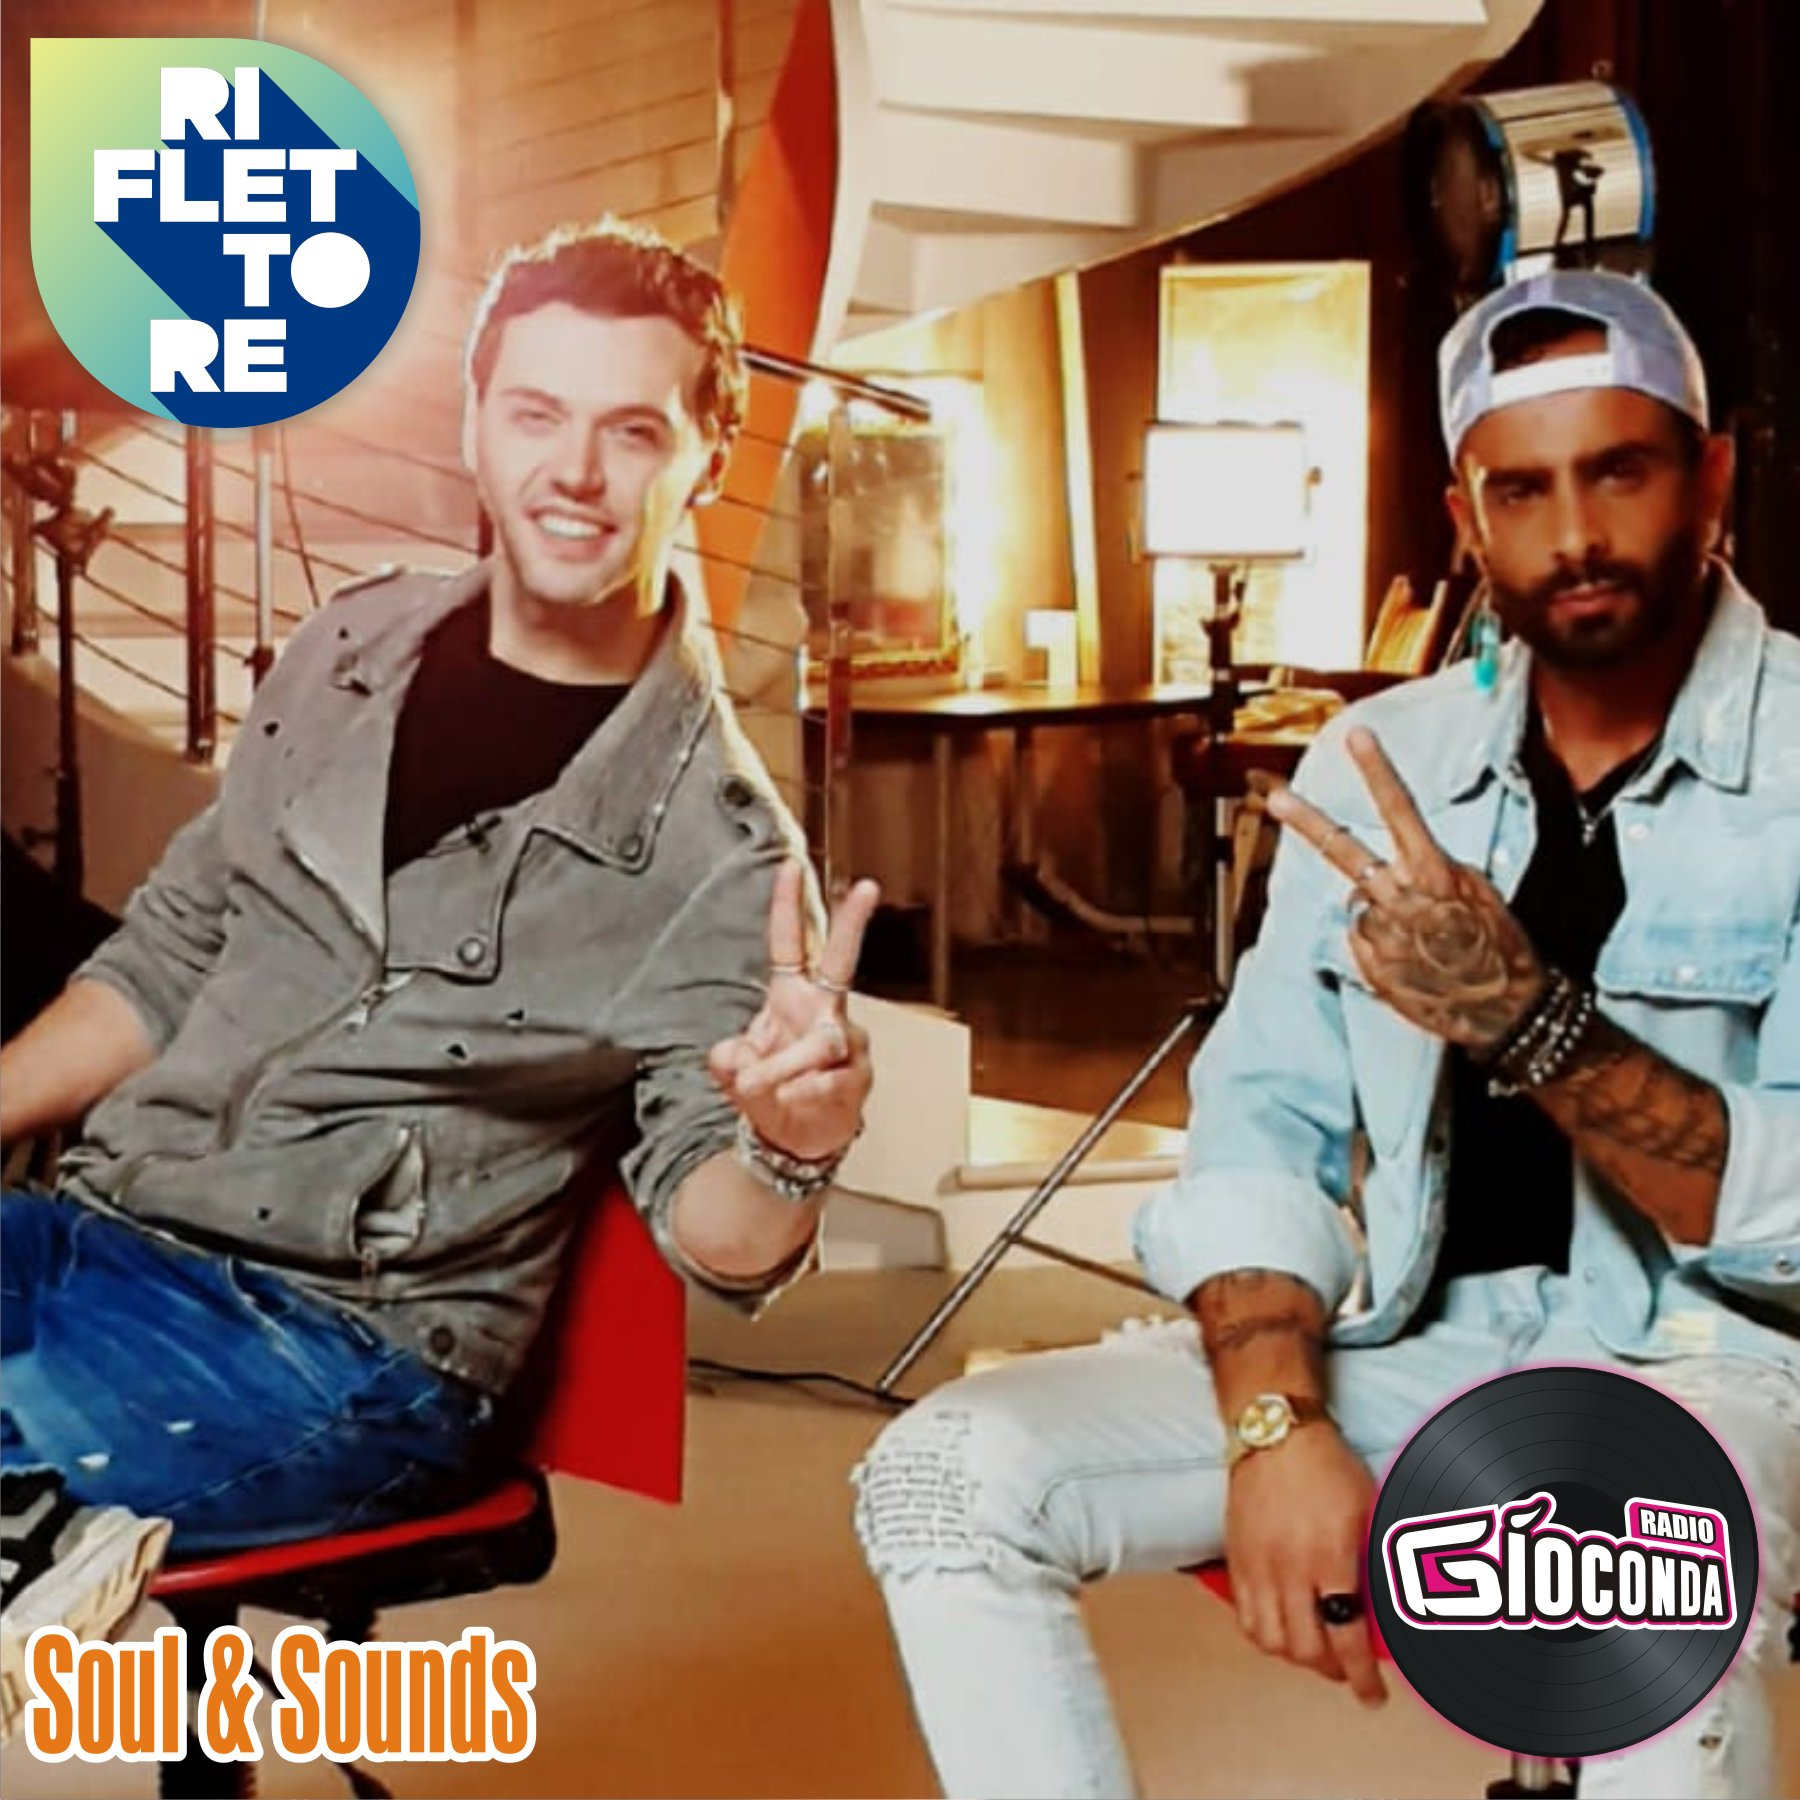 Riflettore con il duo Soul & Sound